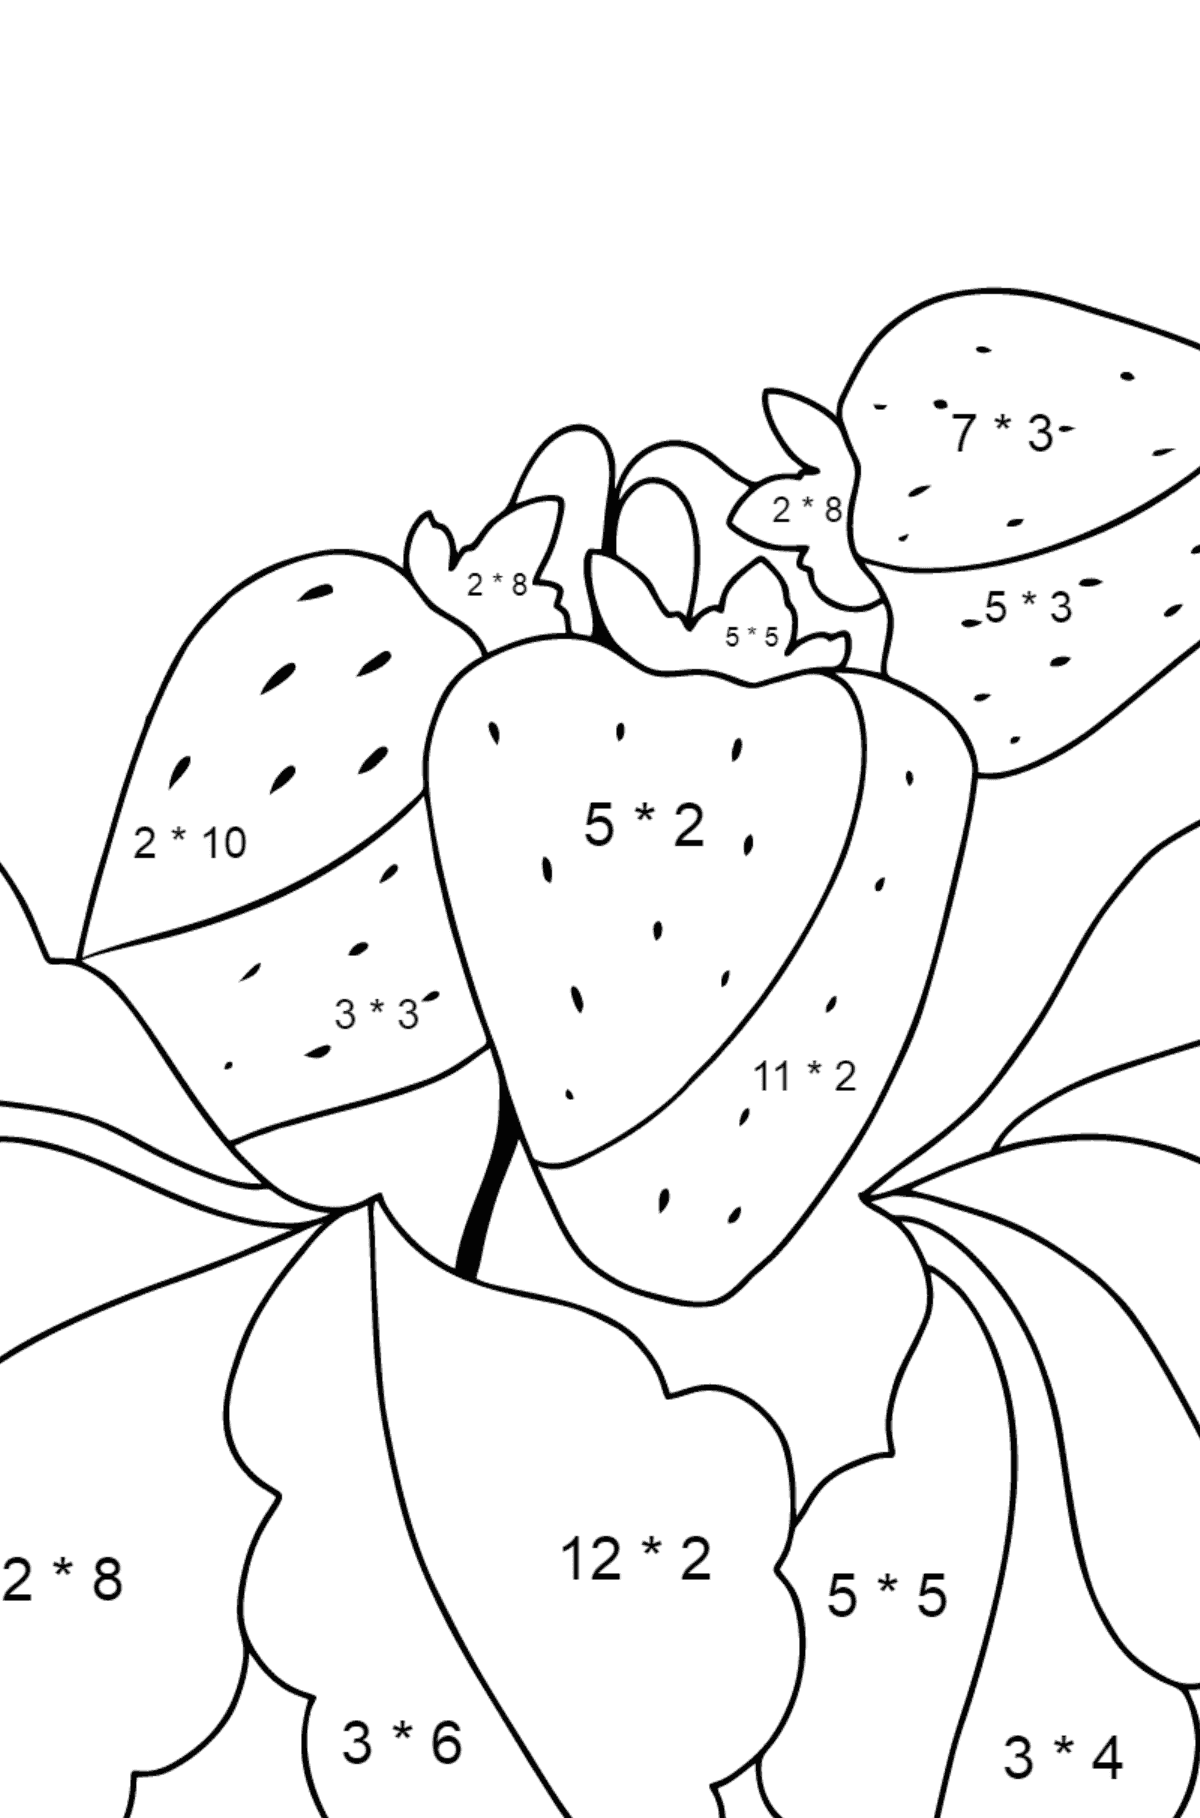 Summer Coloring Page - Strawberries are Ready on the Garden Bed - Math Coloring - Multiplication for Kids